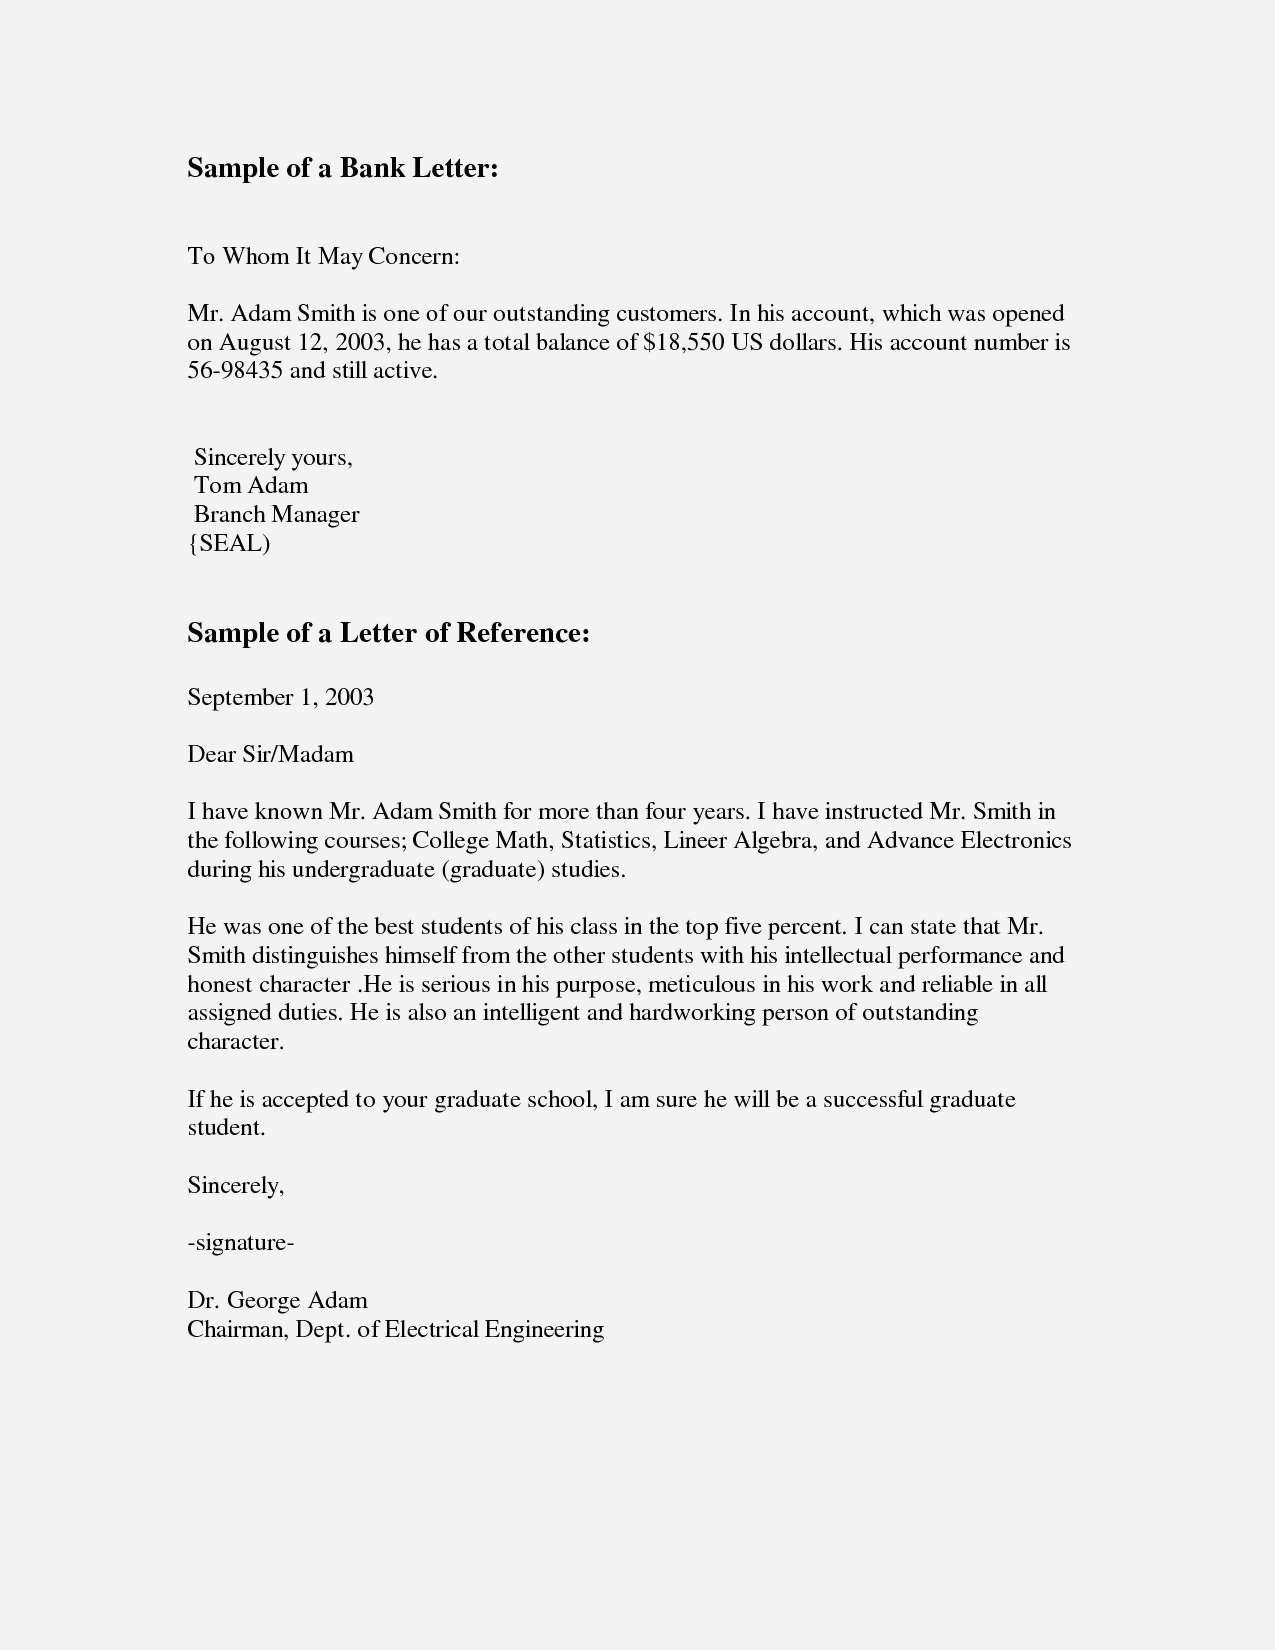 sample reservation of rights letter template Collection-Formal Letter Template Unique bylaws Template 0d Wallpapers 50 ficial Letter Template 15-m